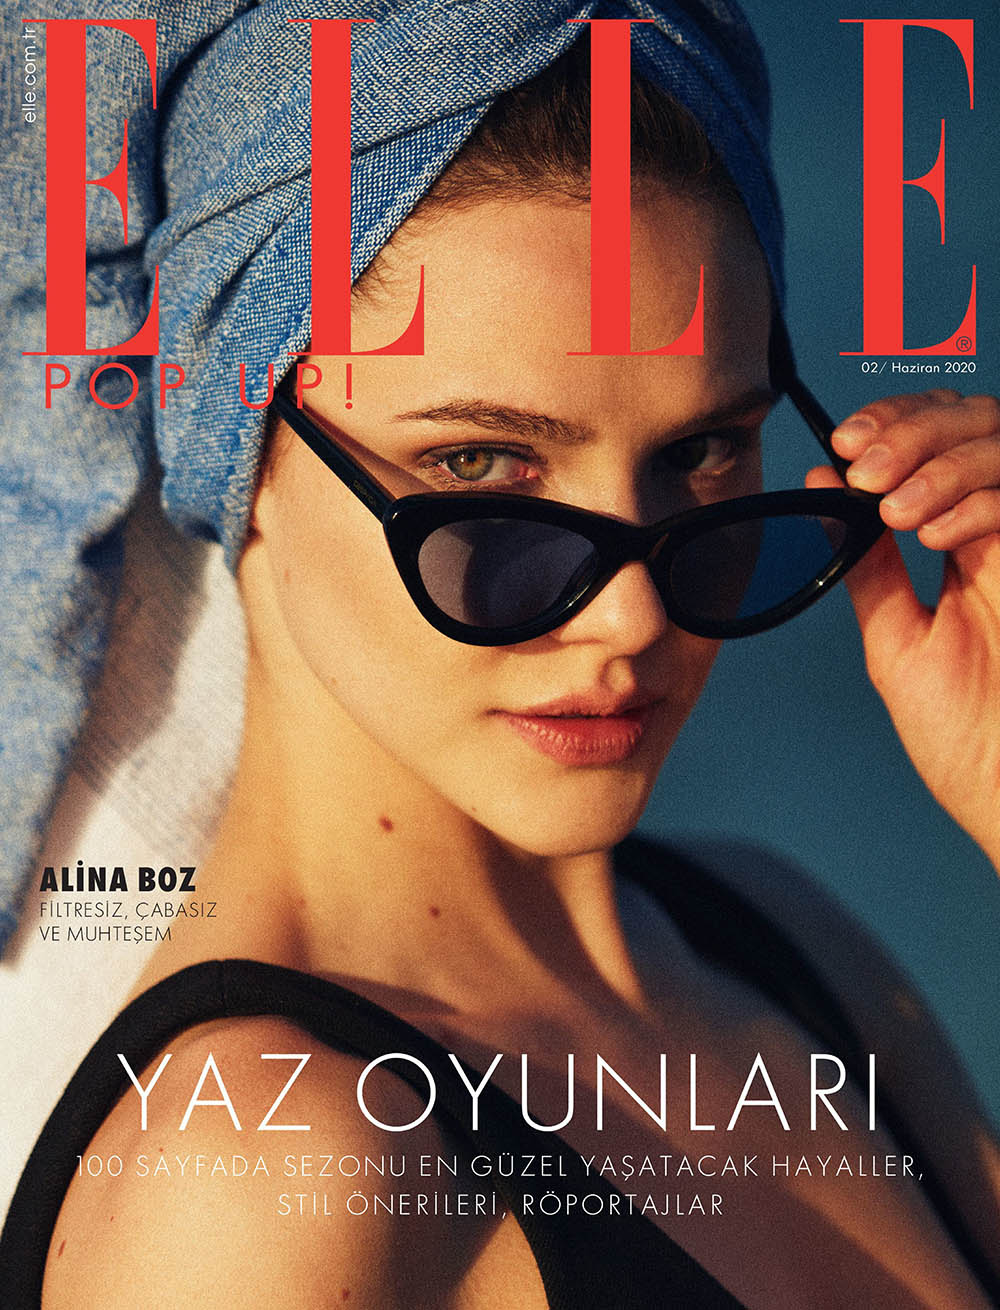 Alina Boz covers Elle Turkey June 2020 by Onur Dağ